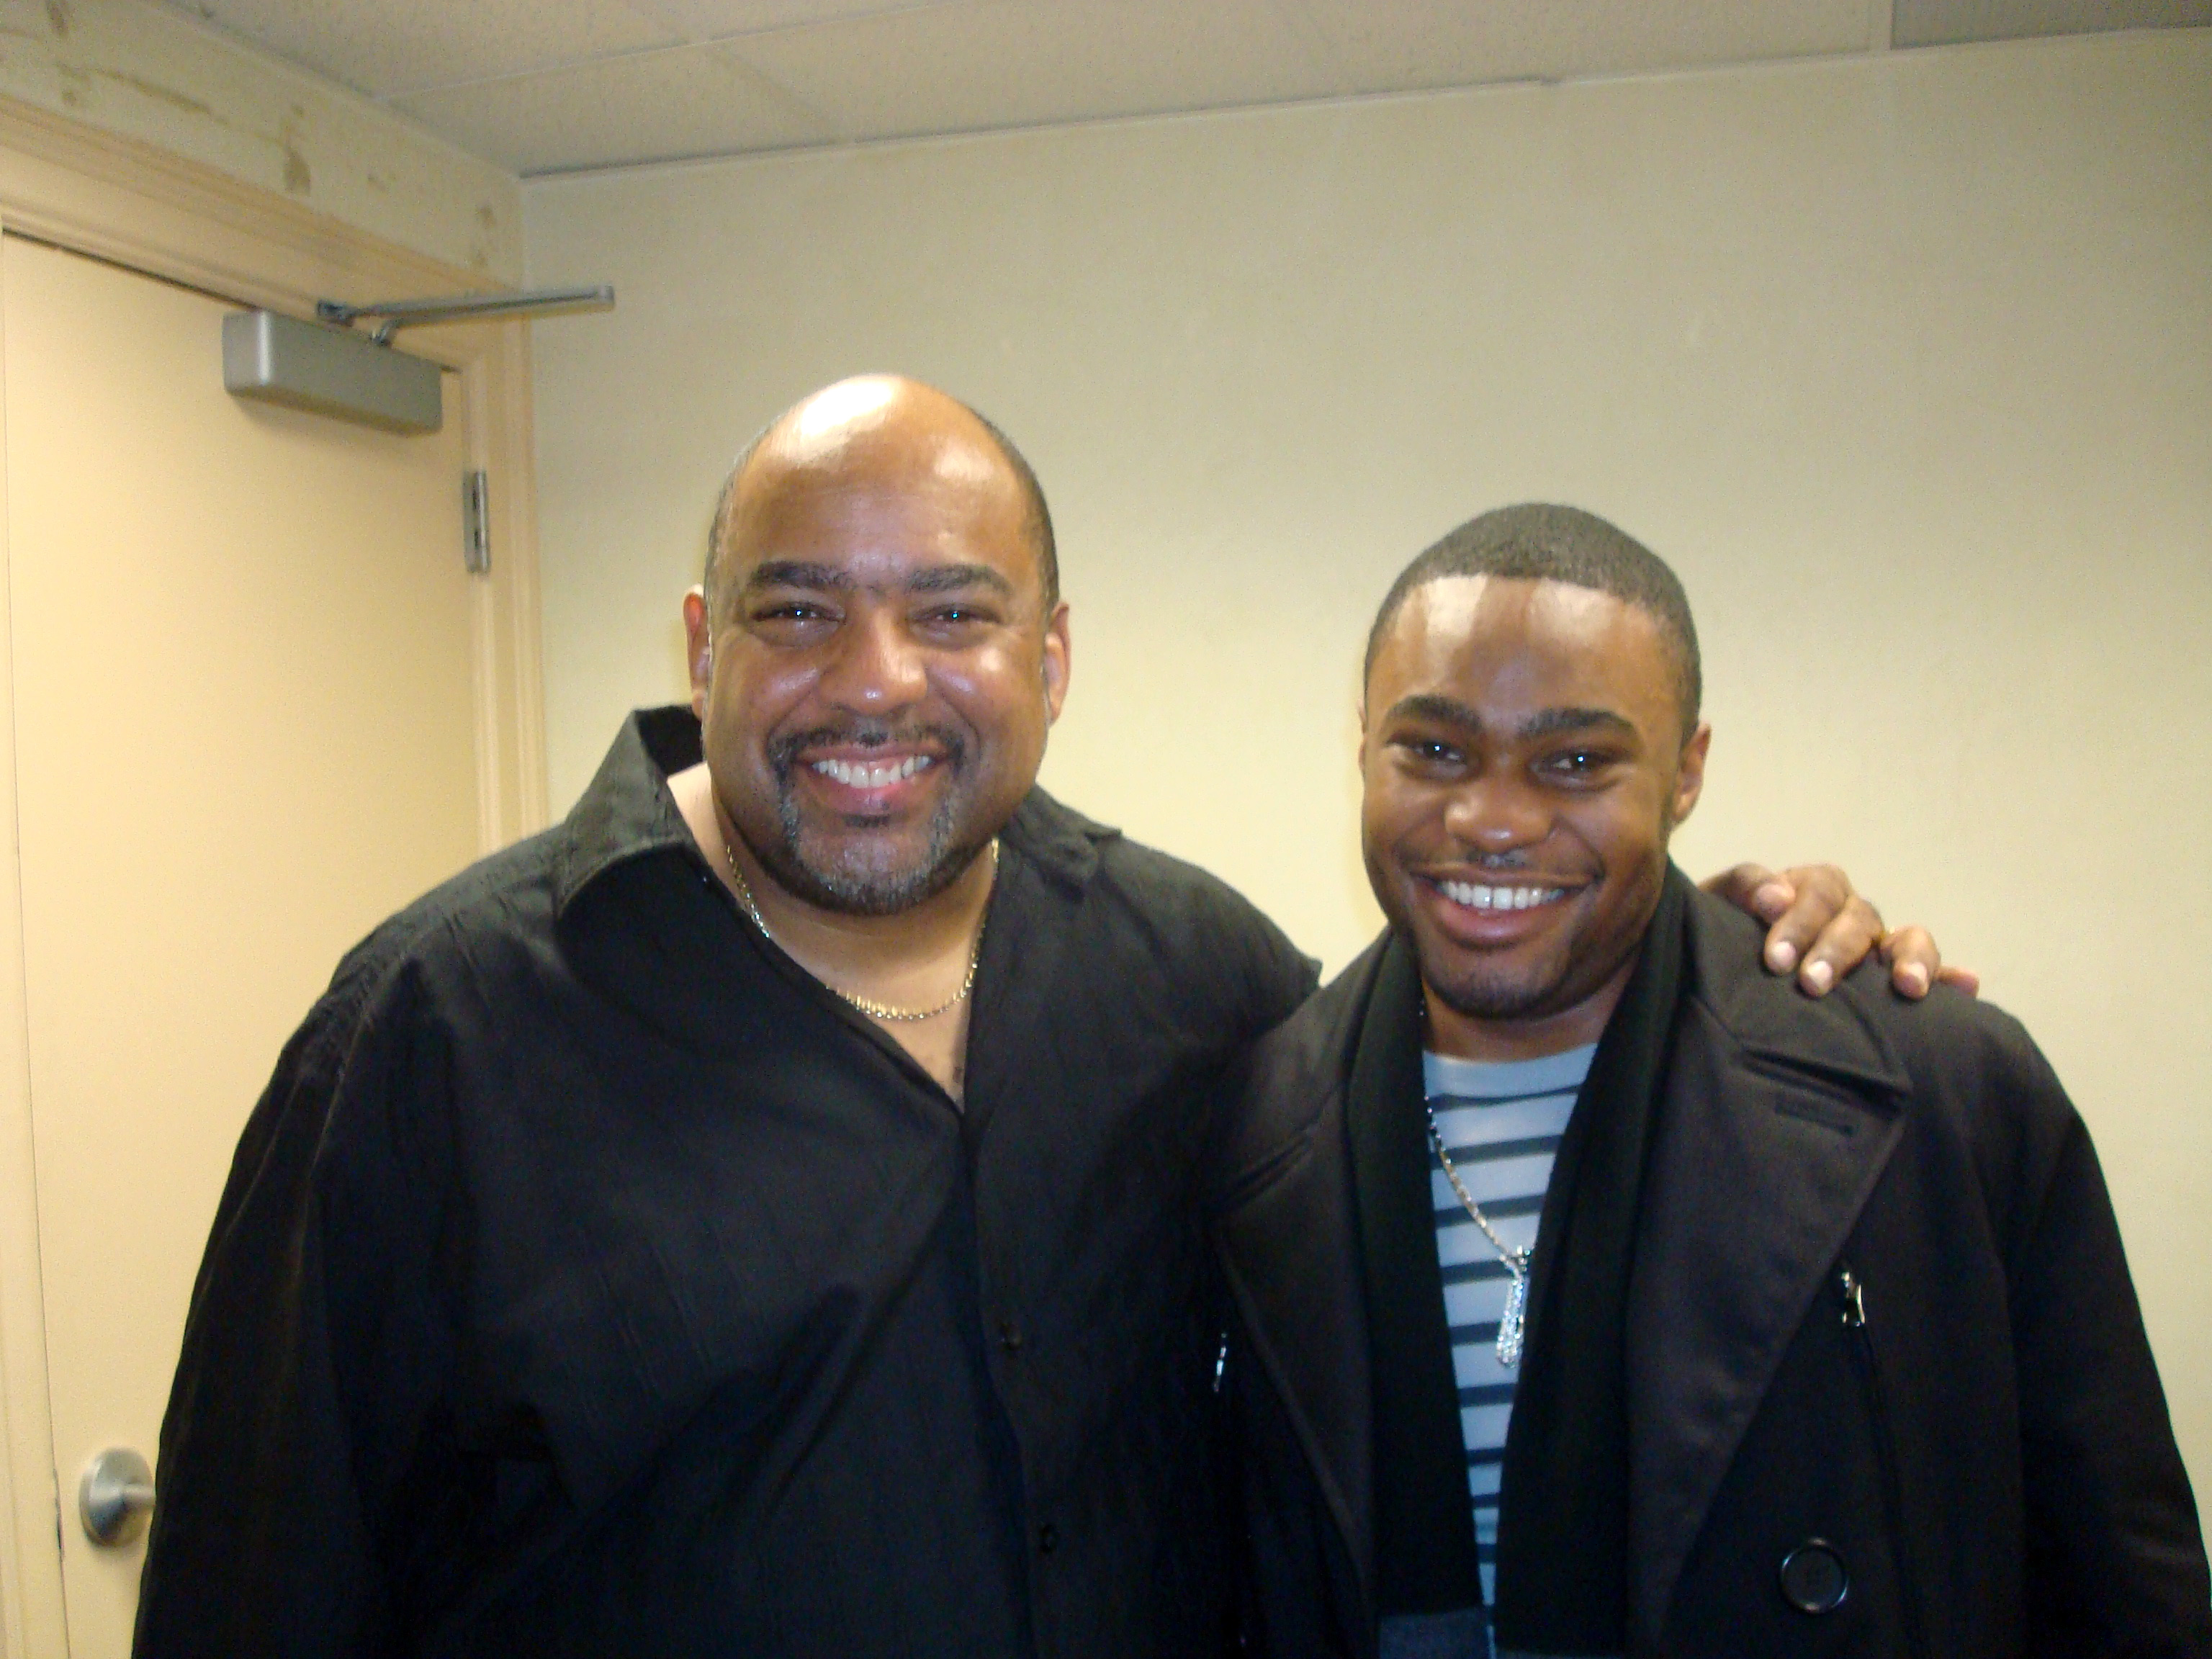 Gerald Albright and Tyrone Smith